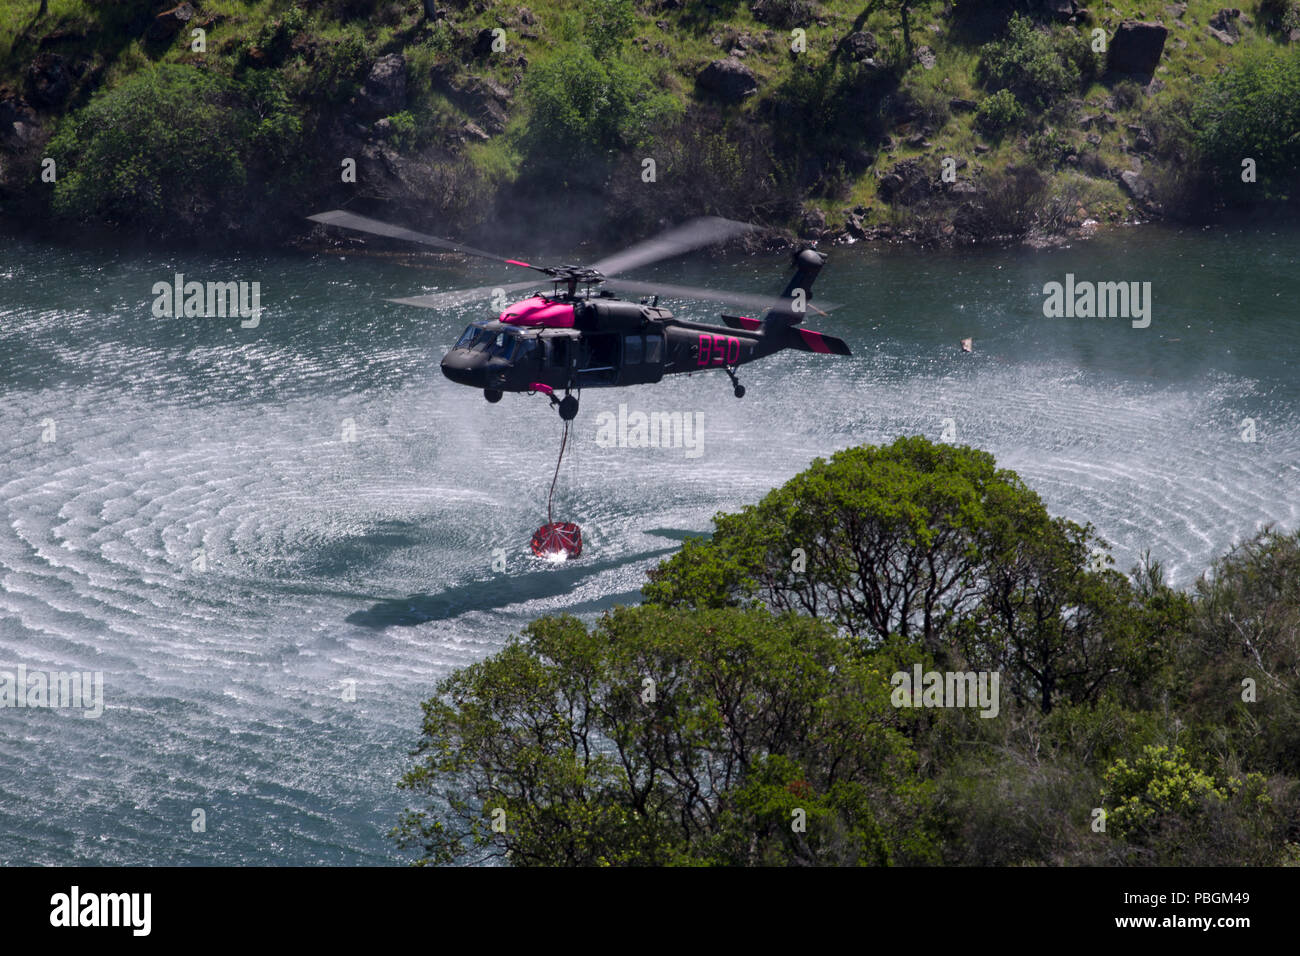 An Army National Guard UH-60 Black Hawk helicopter picks up water from Pardee Reservoir, in Ione, California, Saturday, April 14, 2018, during interagency aircrew training with CAL FIRE. Cal Guard helicopter crews and support personnel gathered for three days of joint wildfire aviation training to prepare for heightened fire activity in the summer and fall. (U.S. Air National Guard photo by Senior Airman Crystal Housman) Stock Photo